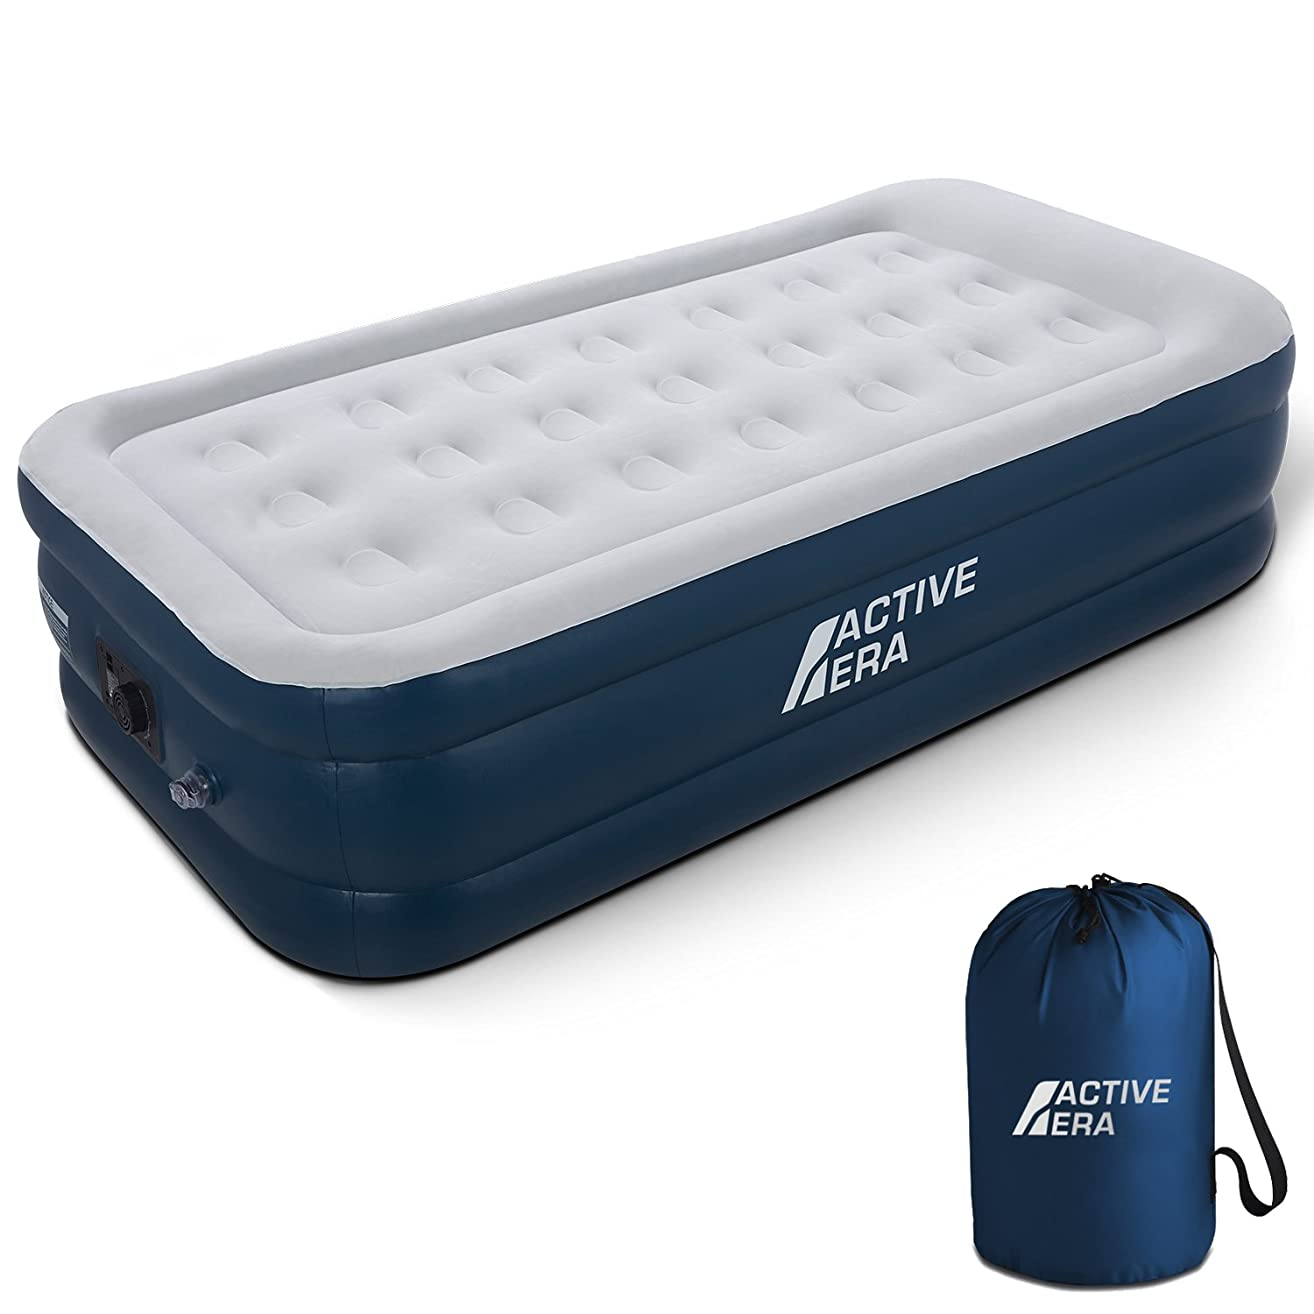 Active Era Premium Twin Size Air Mattress (Single) - Elevated Inflatable Air Bed, Electric Built-in Pump, Raised Pillow & Structured Air-Coil Technology, Height 21